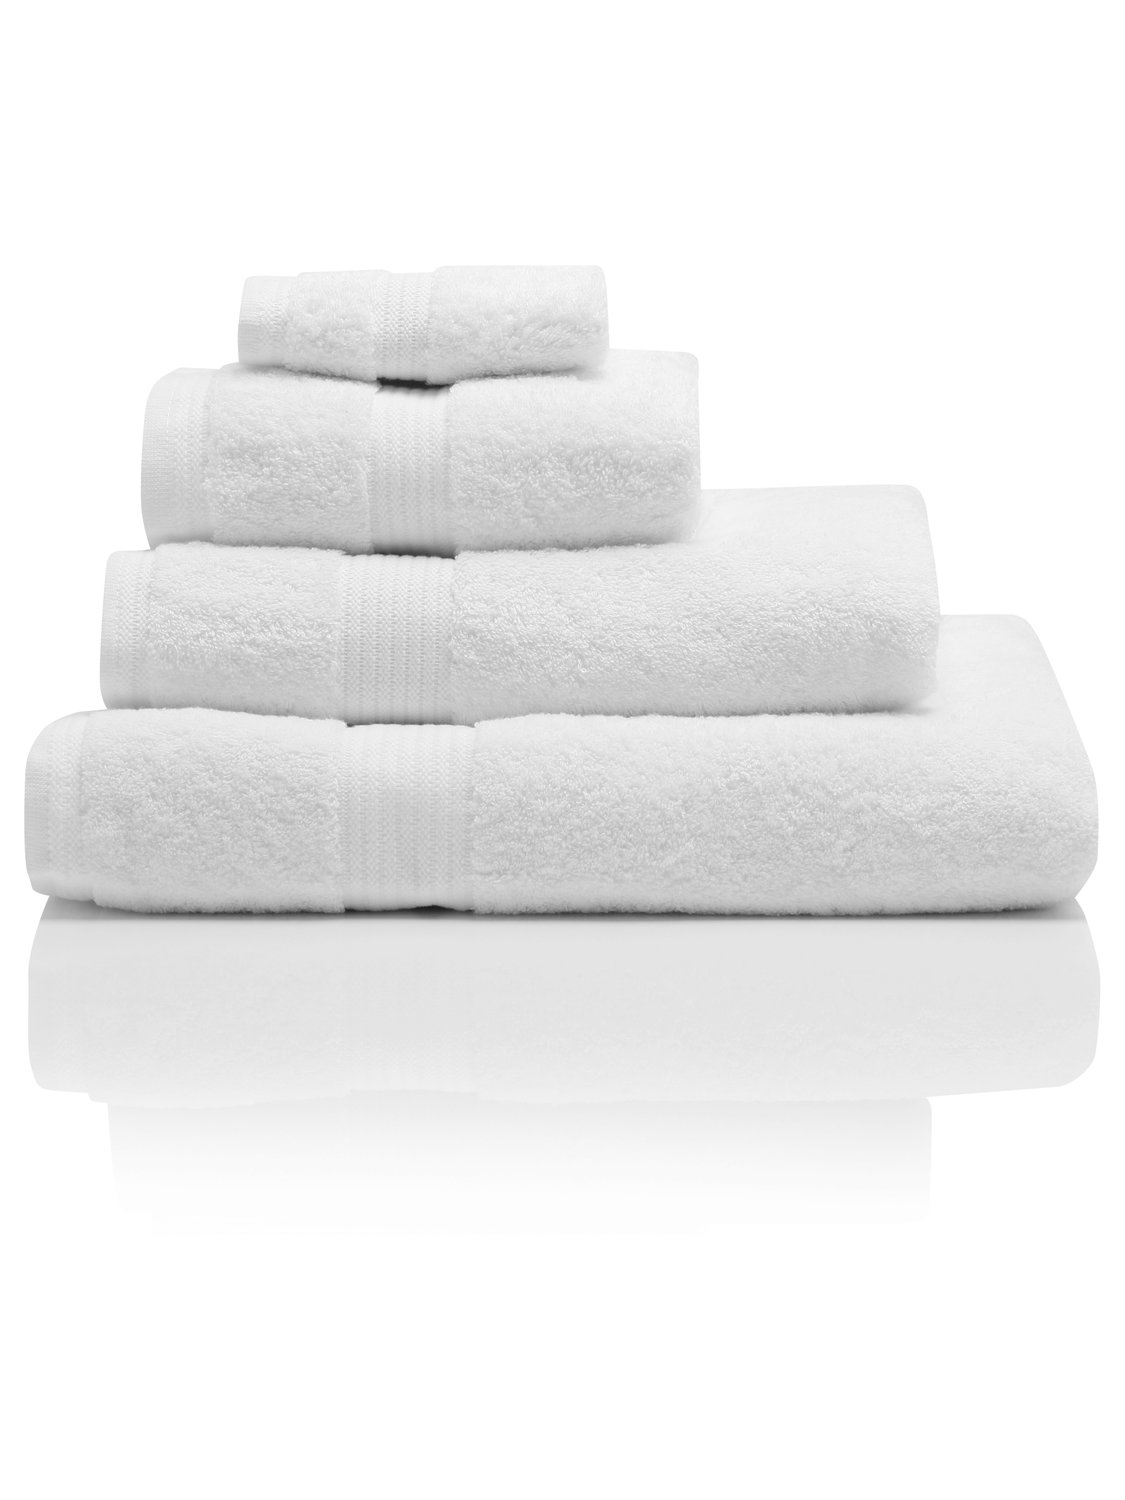 100% combed cotton 580gsm luxury soft and absorbent bath sheet  - white